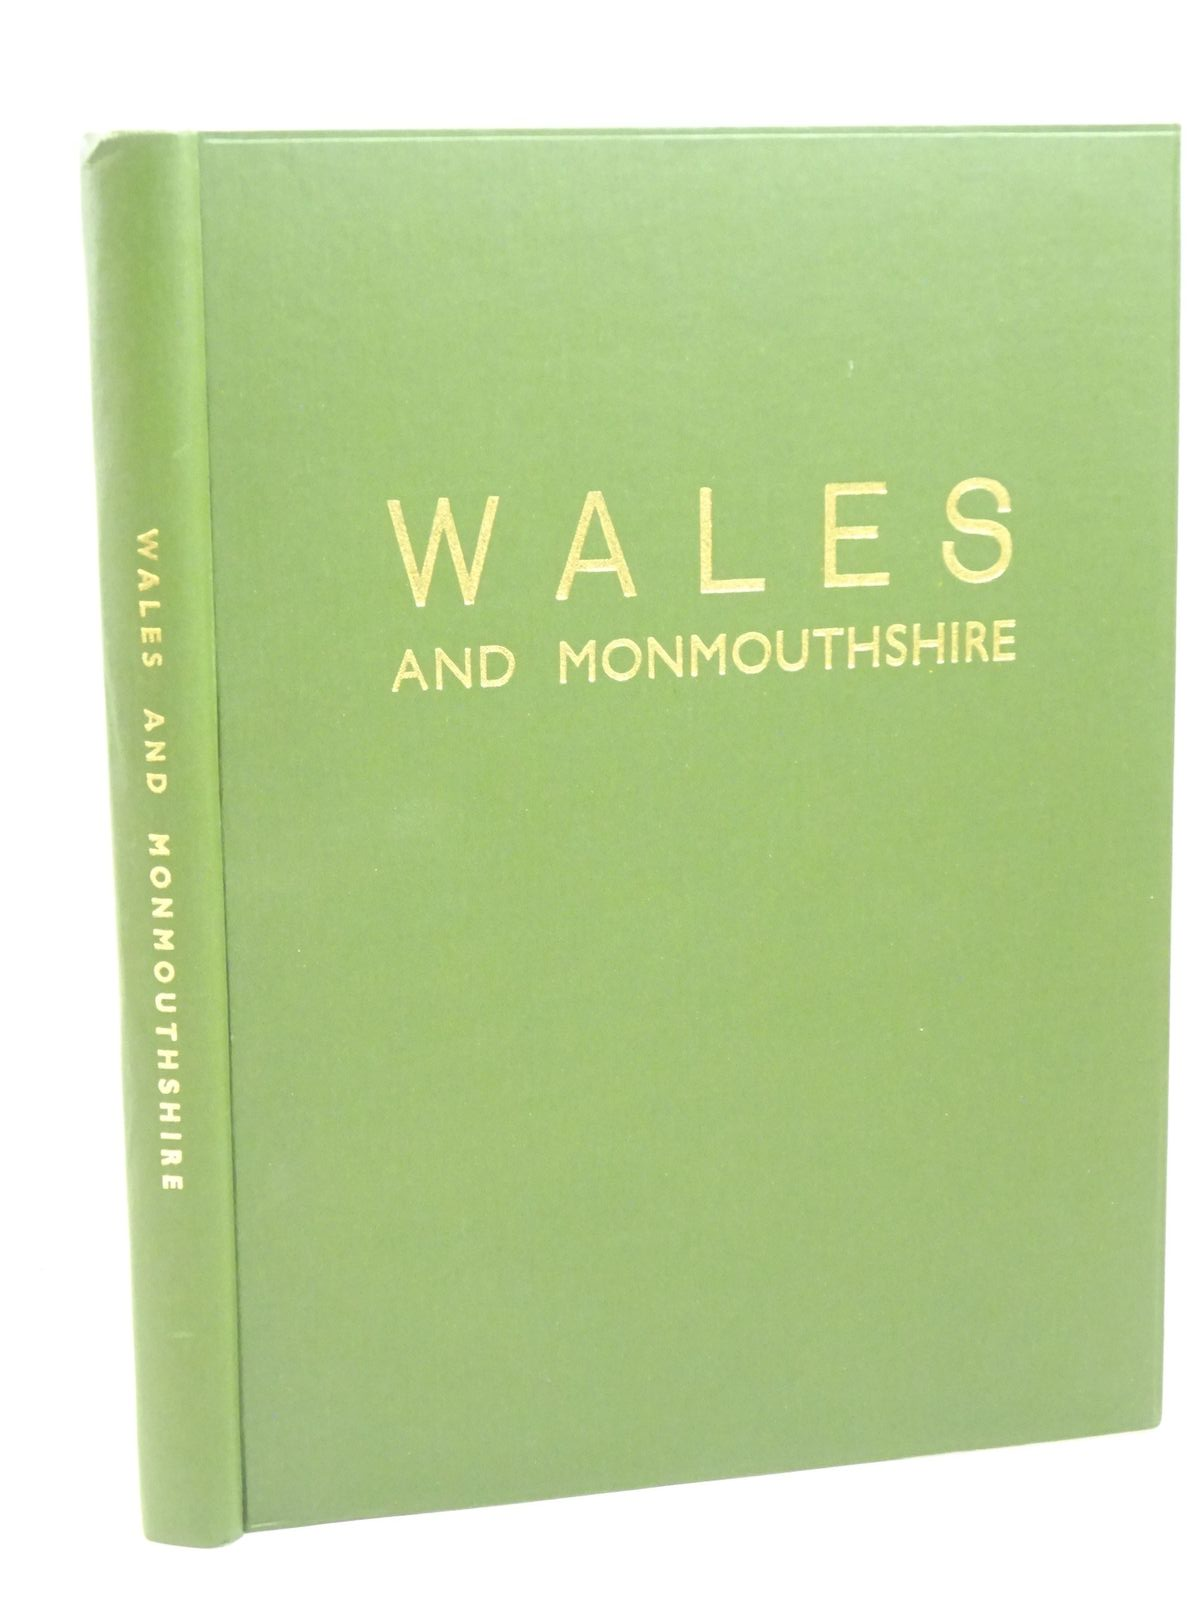 Photo of WALES AND MONMOUTHSHIRE written by Davies, D.J. et al, published by Ed. J. Burrow & Co. Ltd. (STOCK CODE: 1317976)  for sale by Stella & Rose's Books